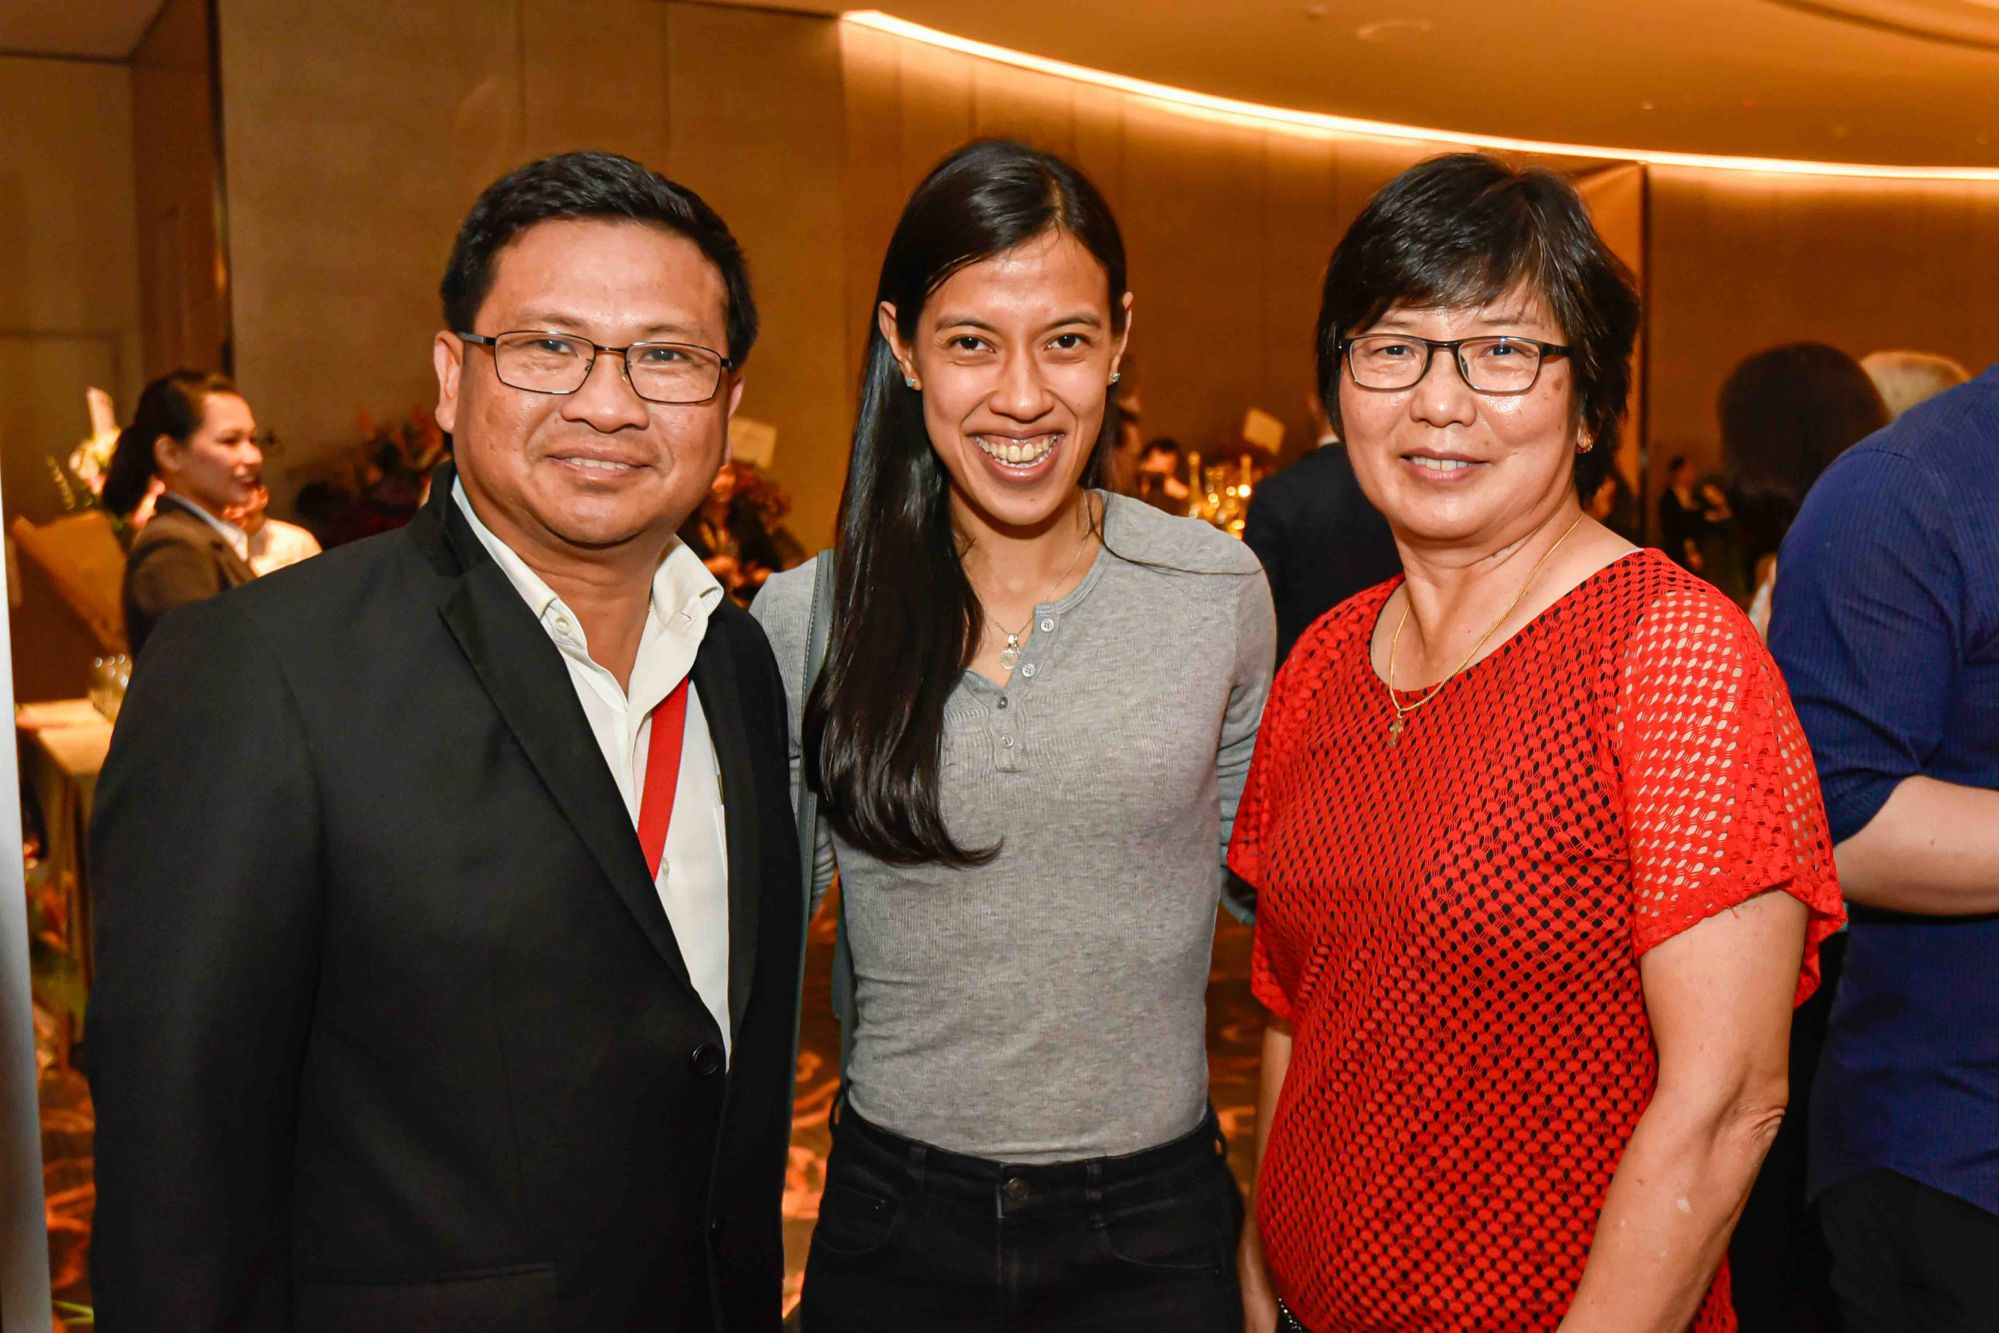 Christopher Low, Datuk Nicol David and Mary Lee